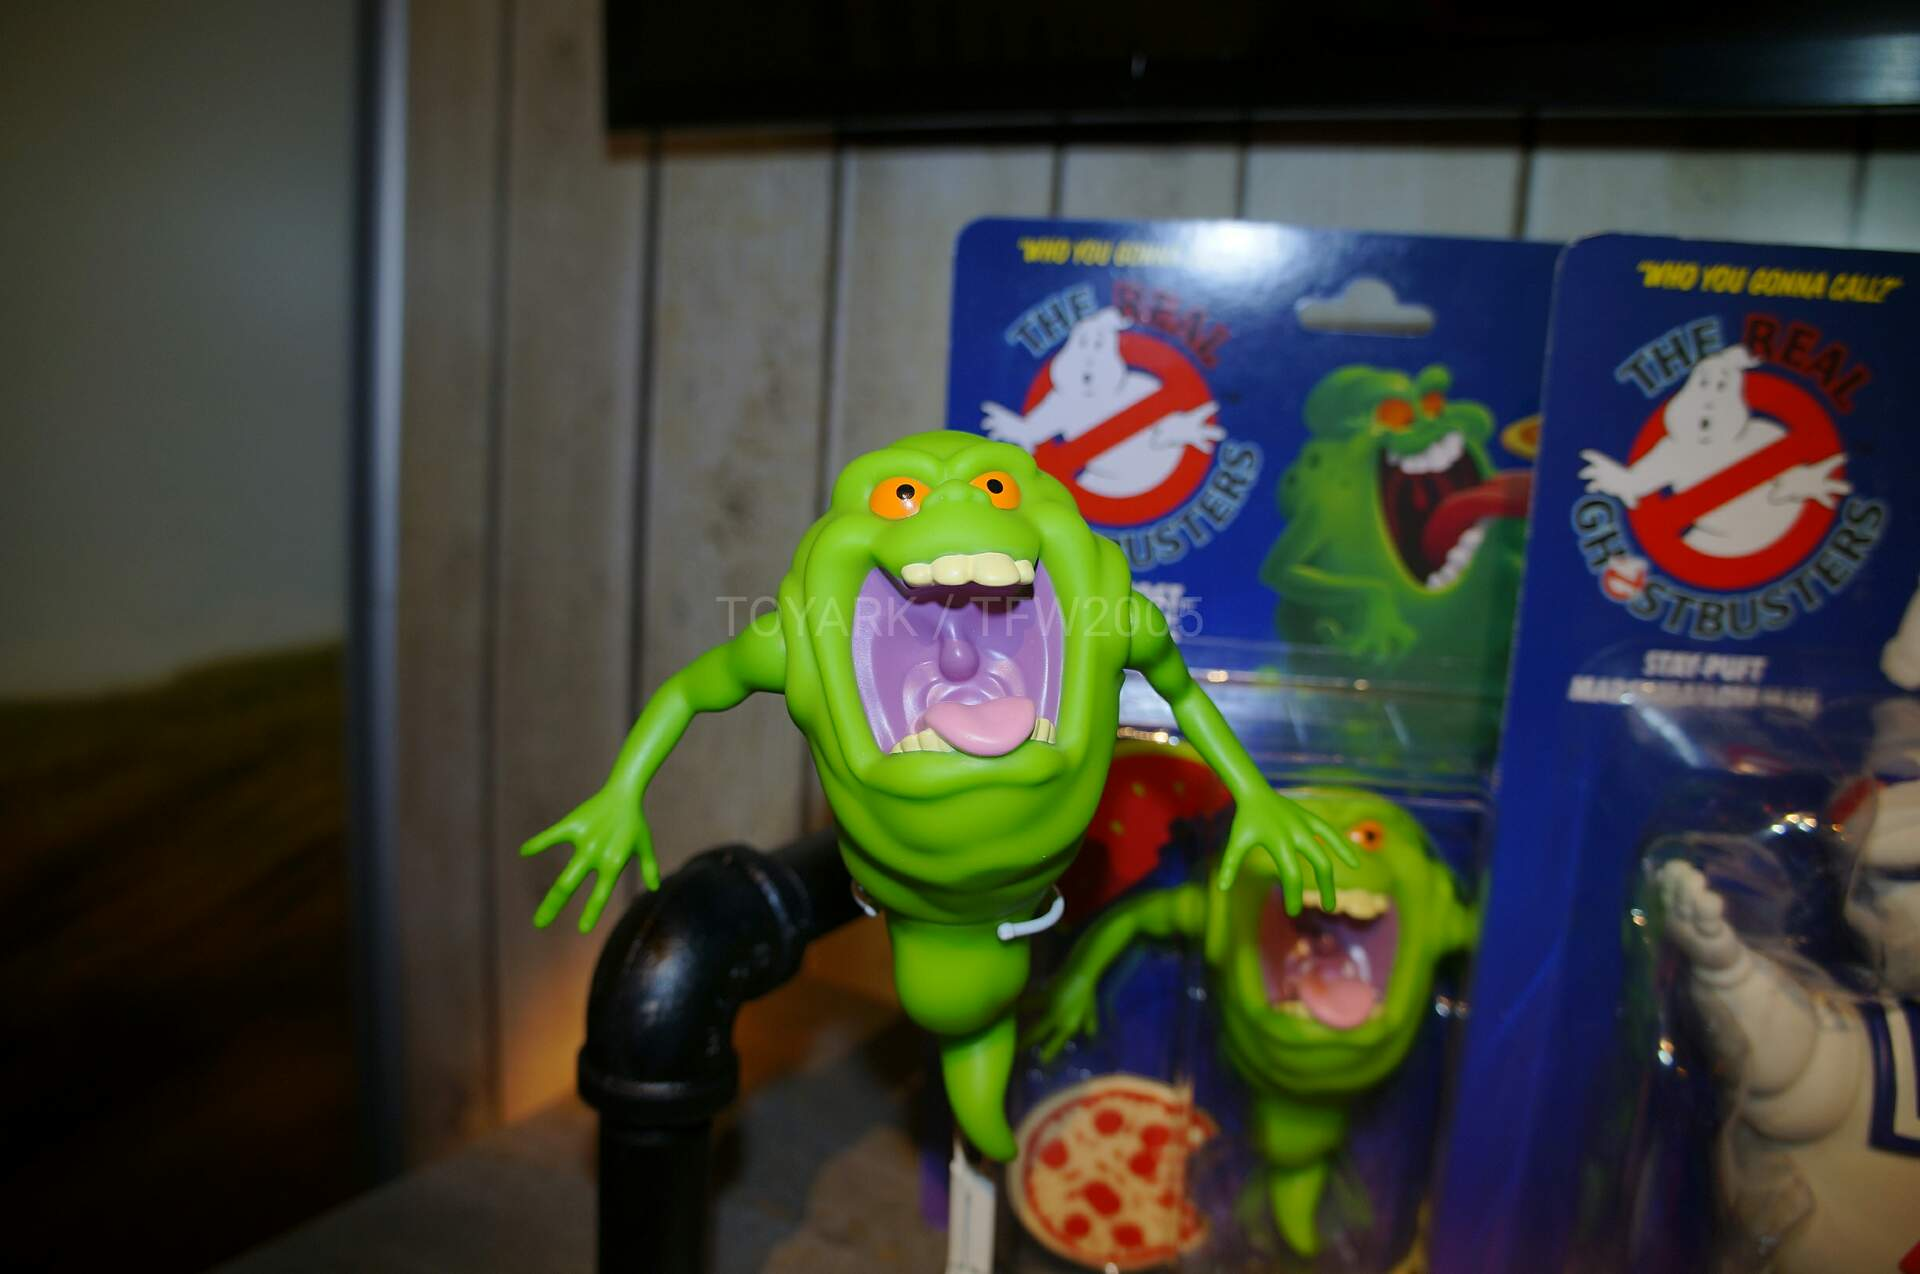 Toy-Fair-2020-Hasbro-Ghostbusters-030.jpg